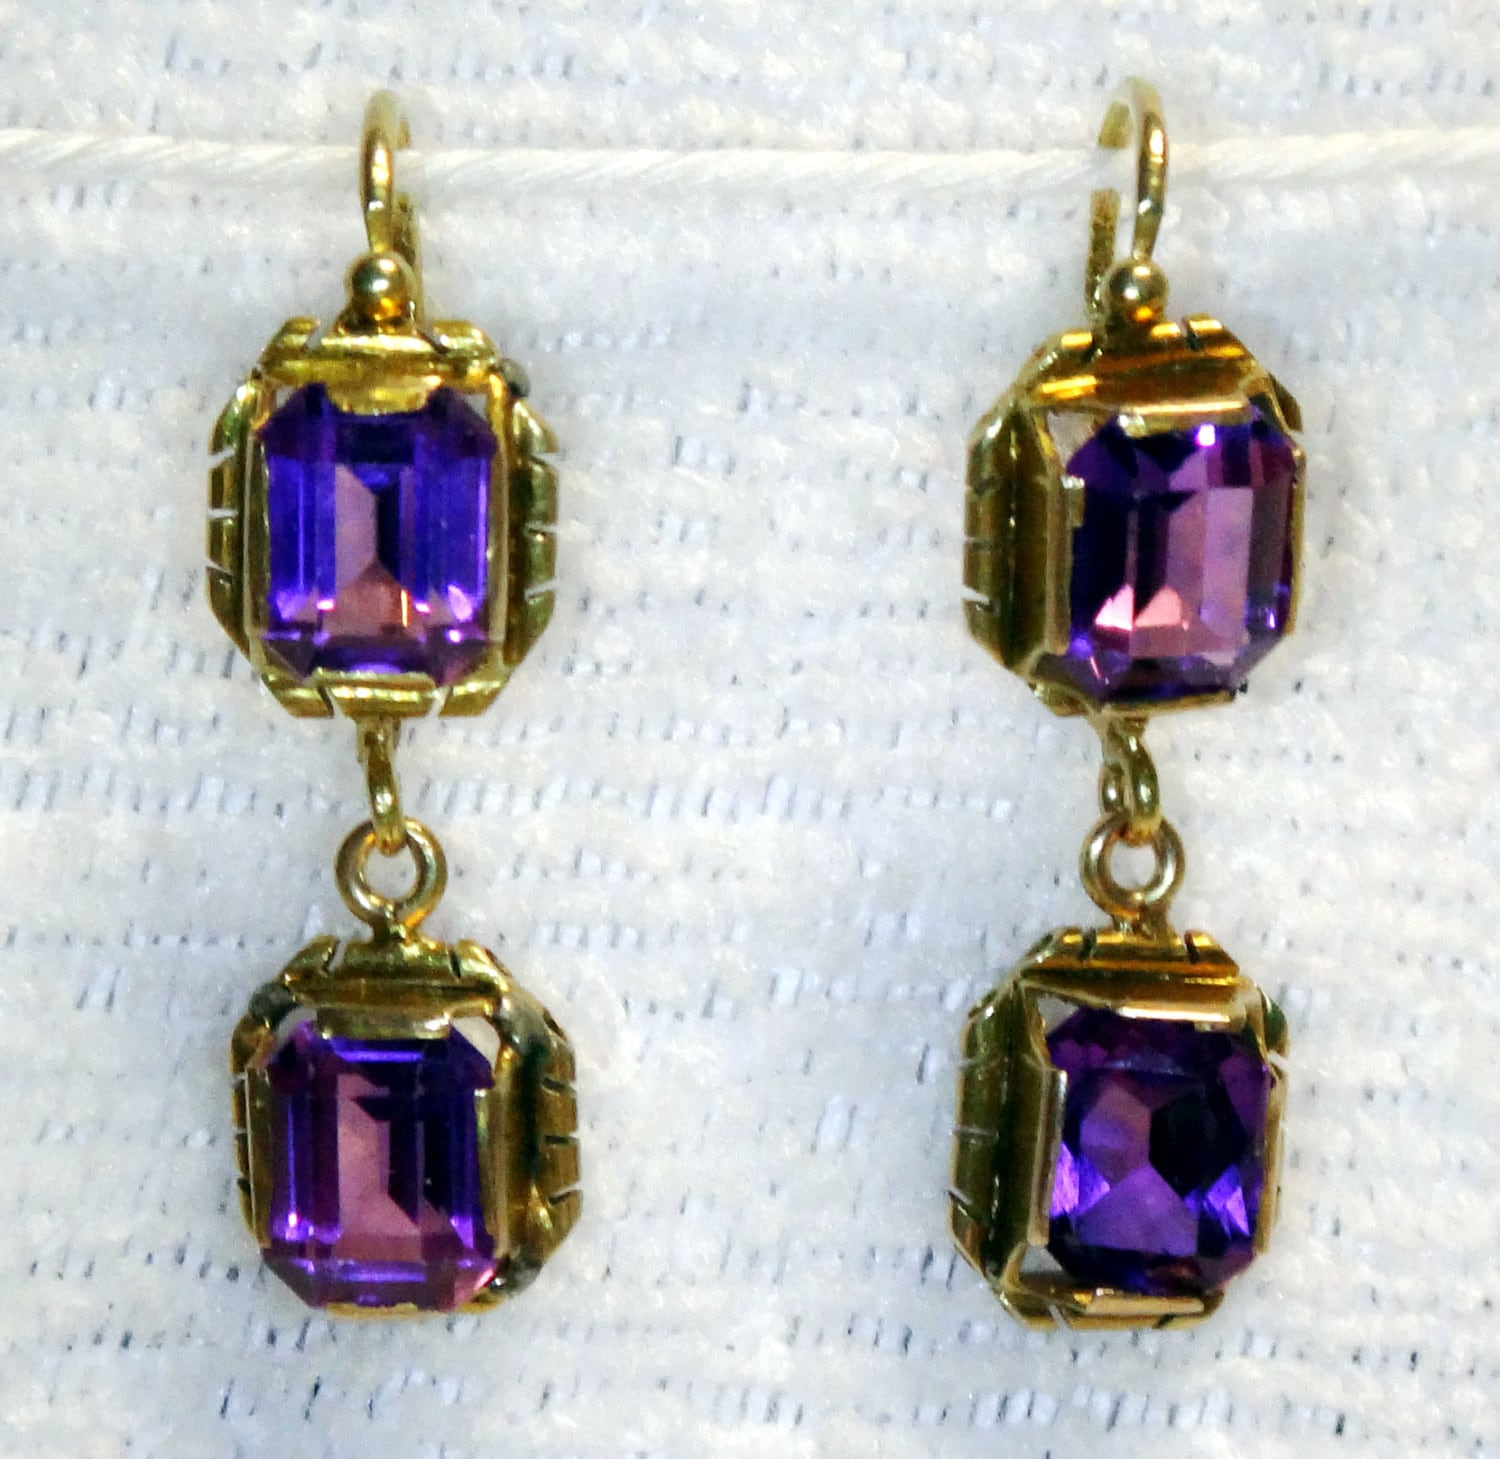 antique 18k gold amethyst earrings antique amethyst earrings. Black Bedroom Furniture Sets. Home Design Ideas